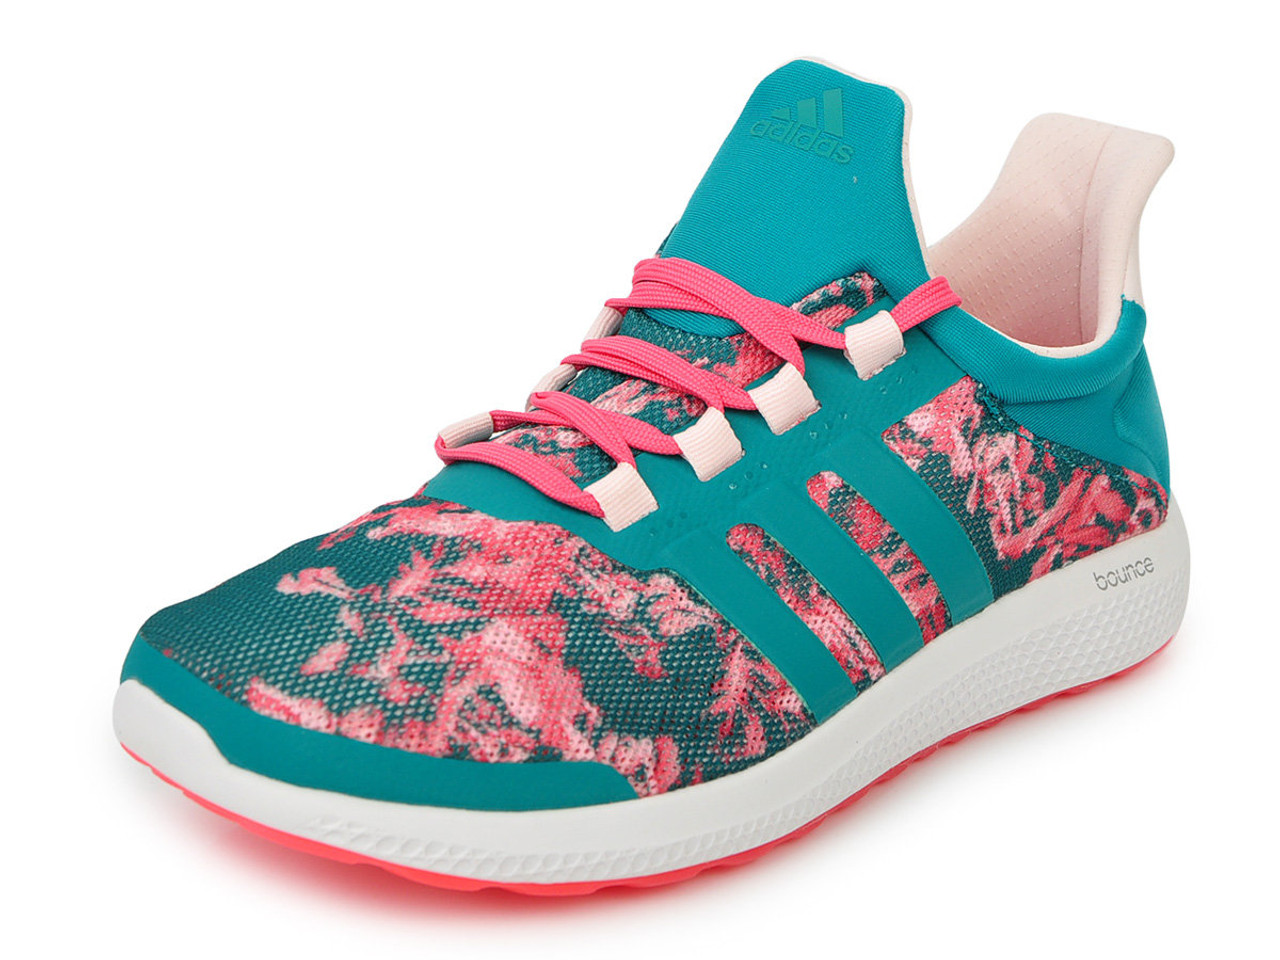 Adidas Women s CC Sonic Running Shoe Green Blush - Shop now   Shoolu.com 24679a1b4e63